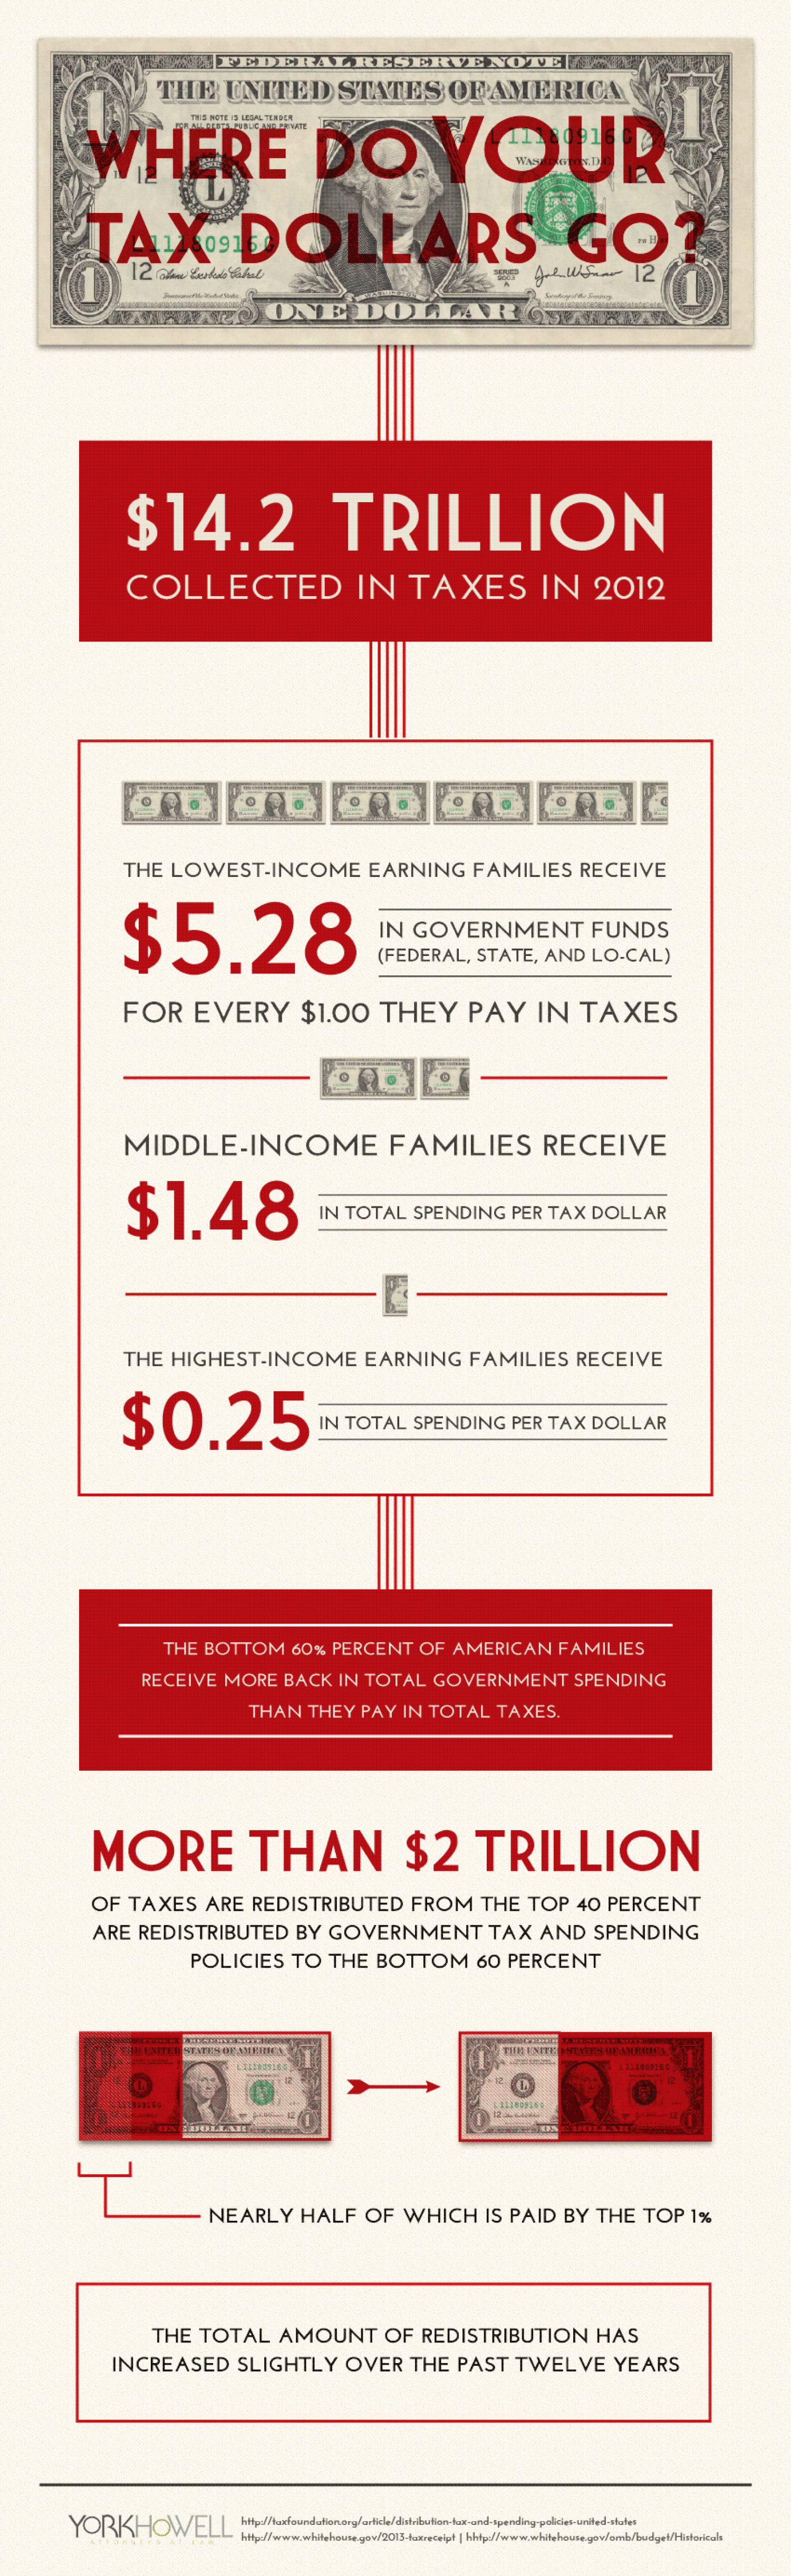 Where Do Your Tax Dollars Go? Infographic